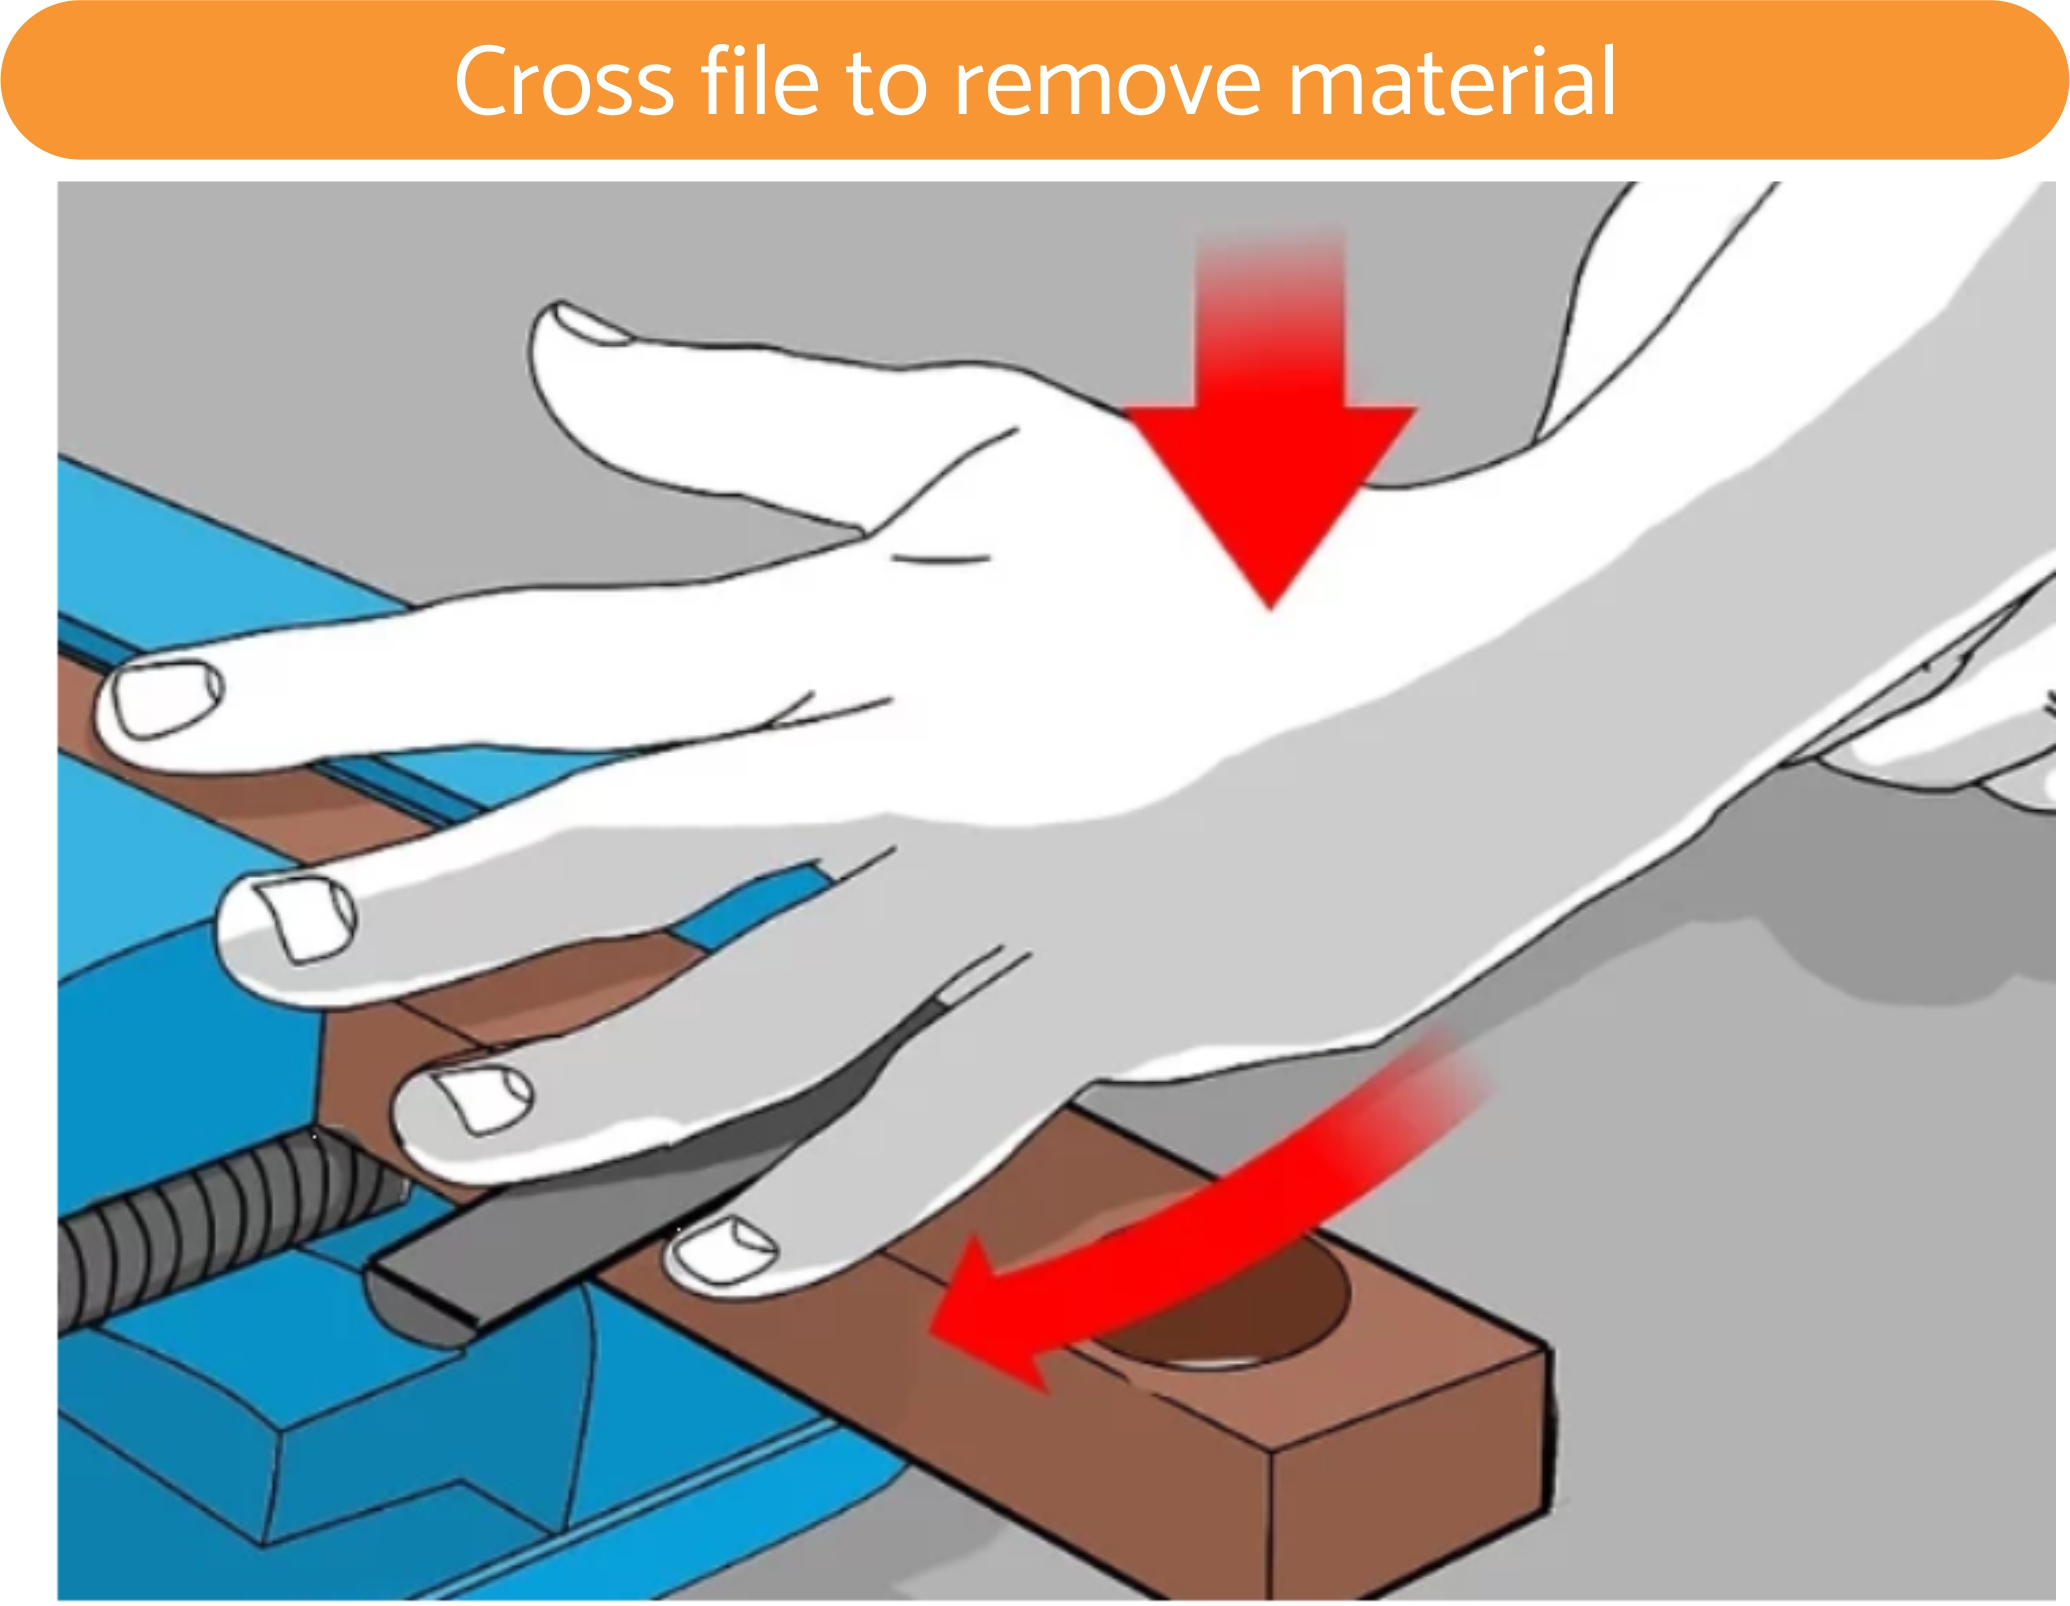 Cross file to remove material